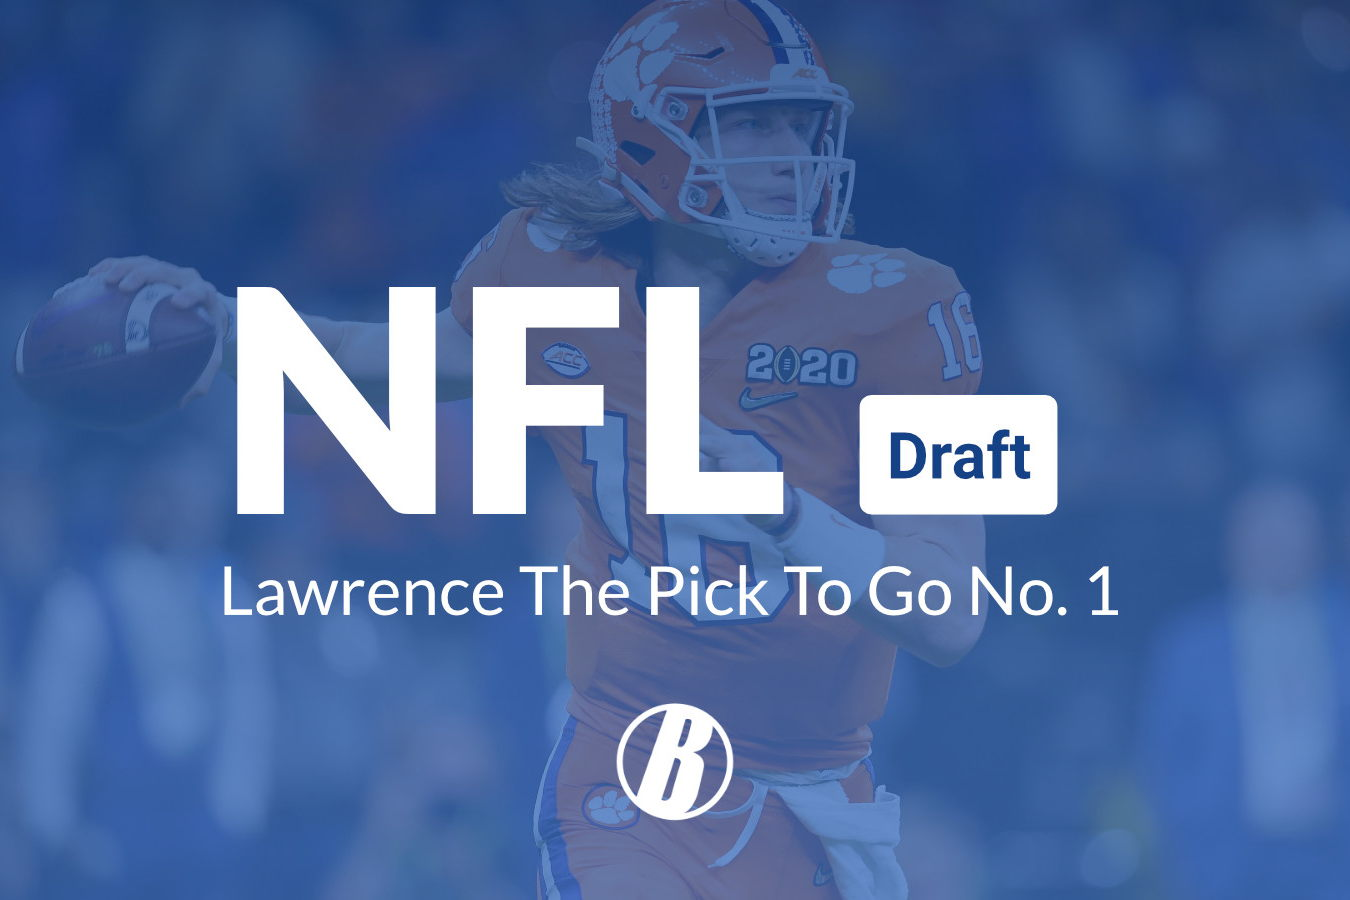 NFL Draft: Lawrence The Pick To Go No. 1